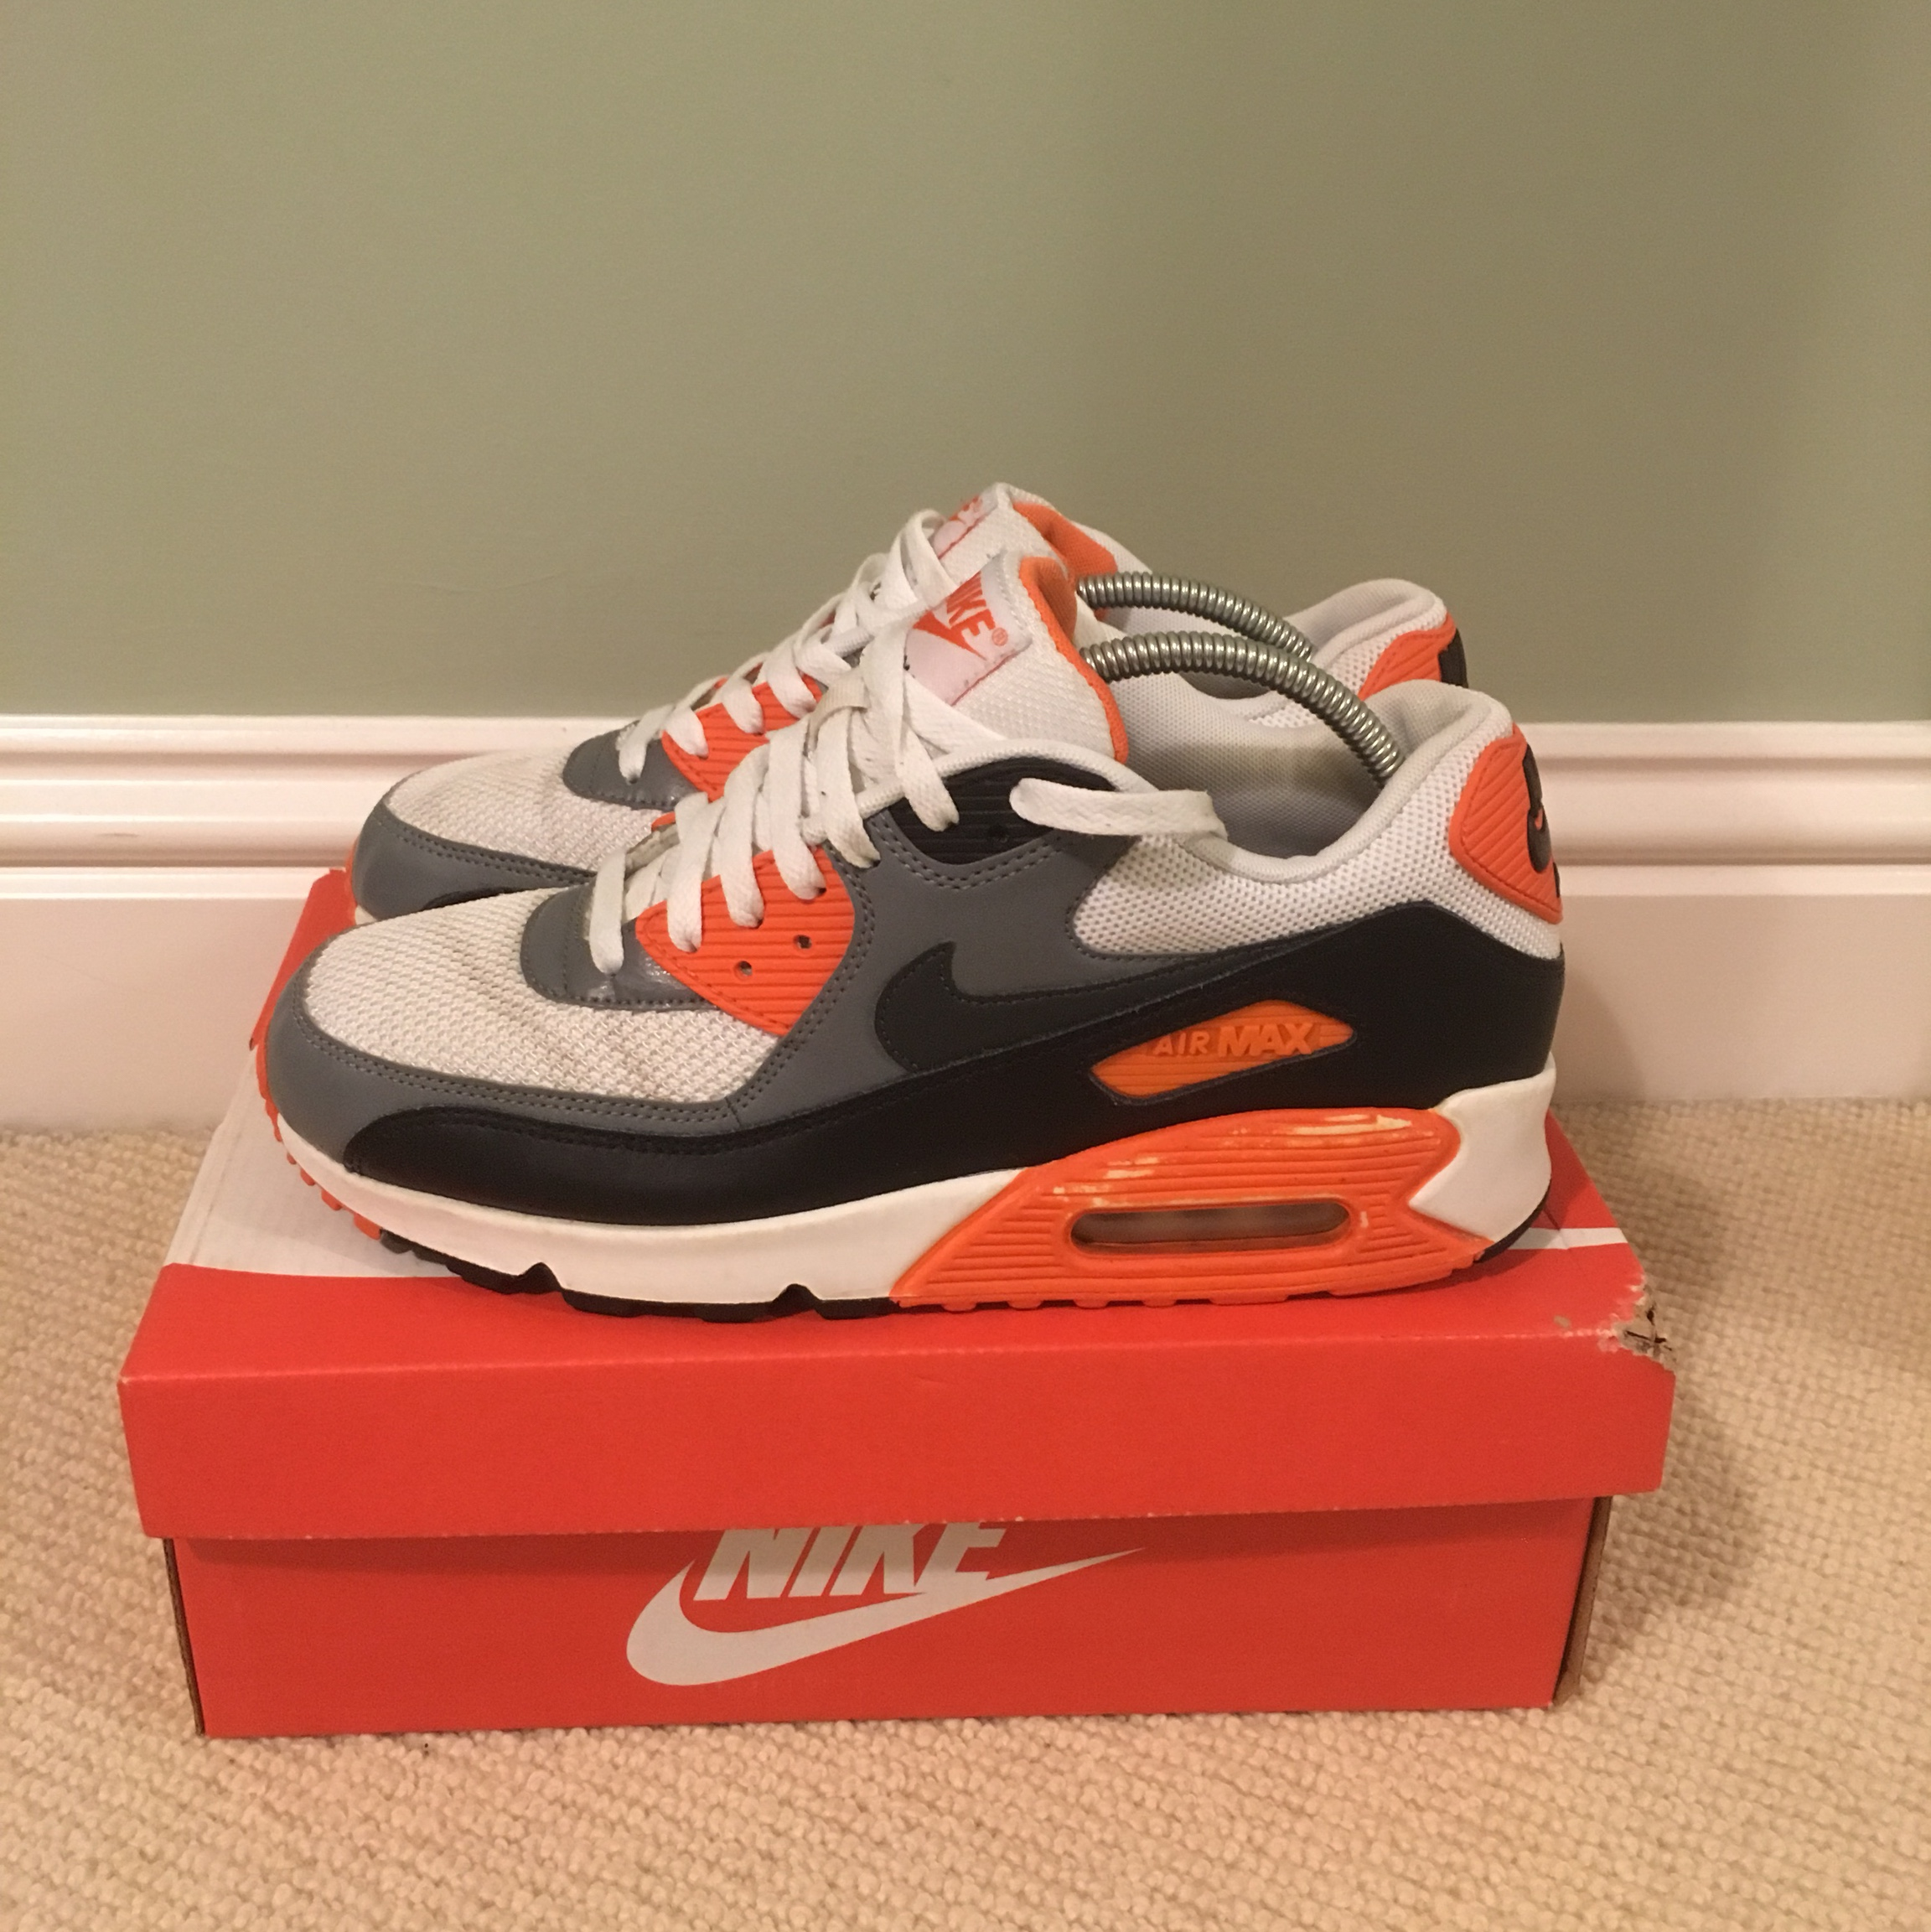 Nike Air max 90 Infrared 'orange' limited edition. Depop